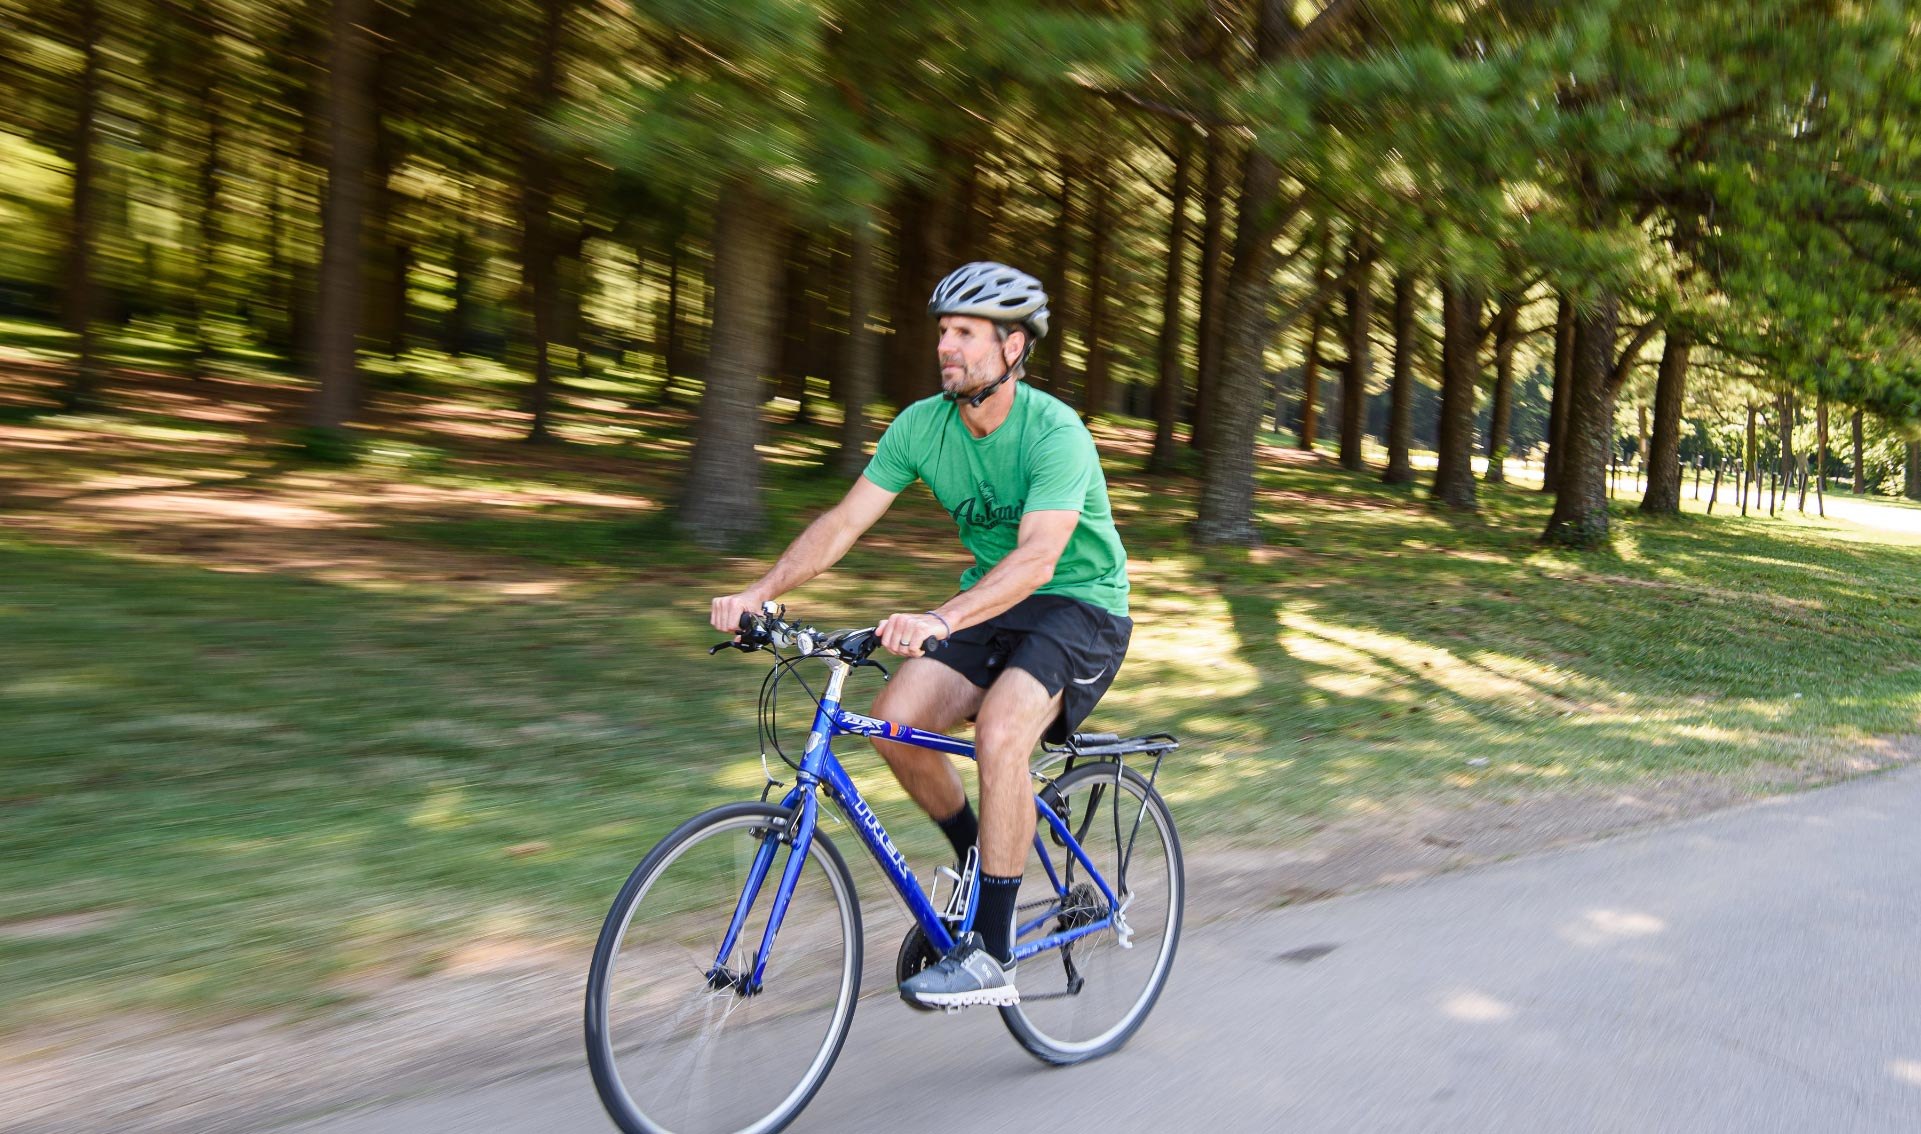 Ryan rides his bike along a road next to a clump of trees. The background is blurred slightly. He is wearing a green shirt and a helmet.